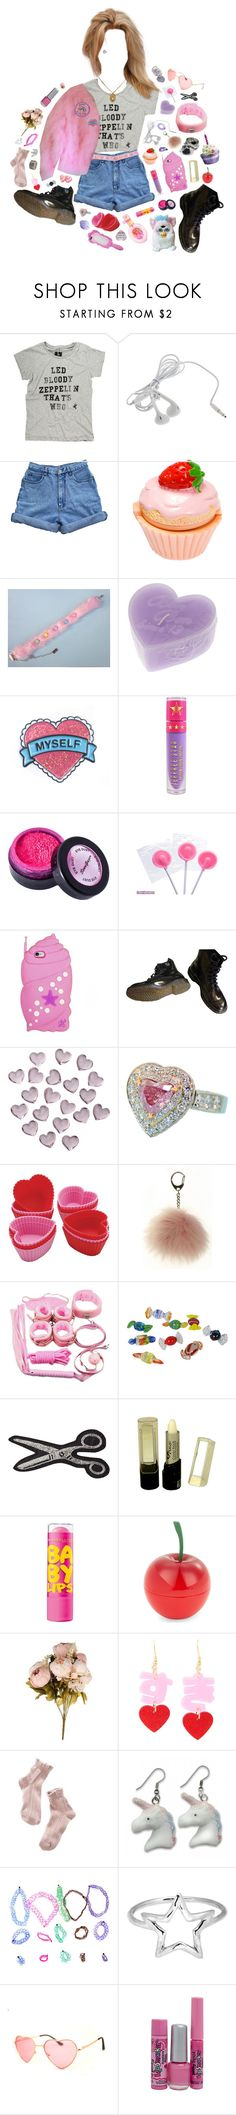 """""""I think I lost my head"""" by queenofrocknroll ❤ liked on Polyvore featuring Bill Blass, Jeffree Star, Stargazer, Dr. Martens, Crate and Barrel, Olympia Le-Tan, Maybelline, Tony Moly, Moschino and 1937"""